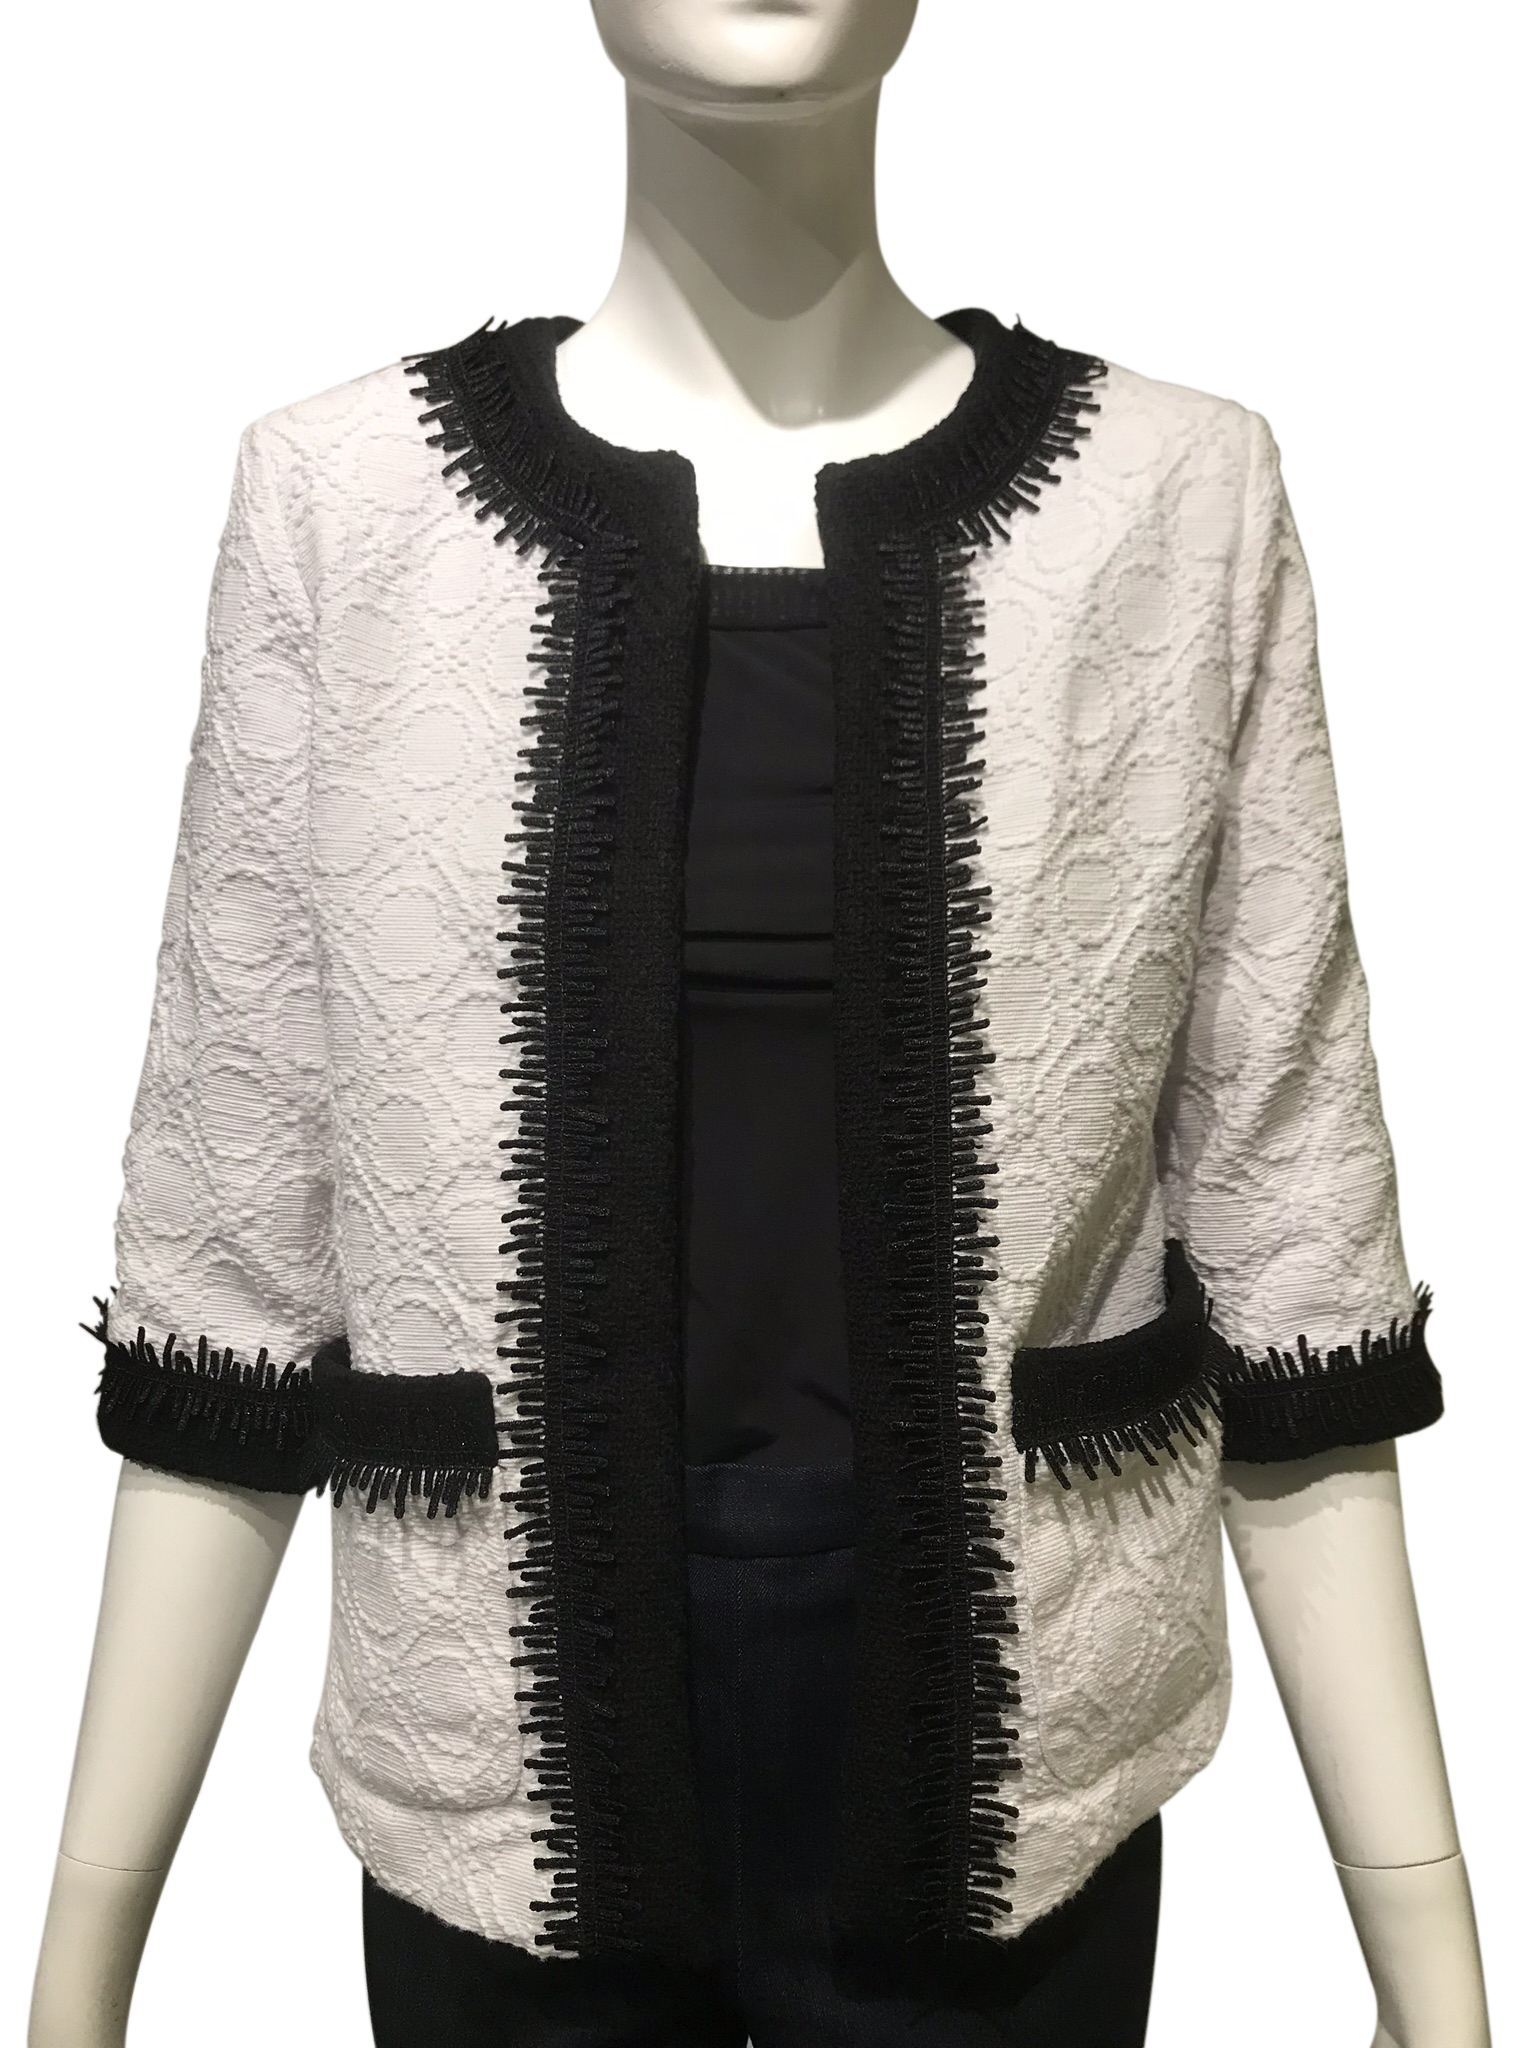 Dayang%20jacket%20in%20ilocos%20maranao%20white%20with%20black%20details